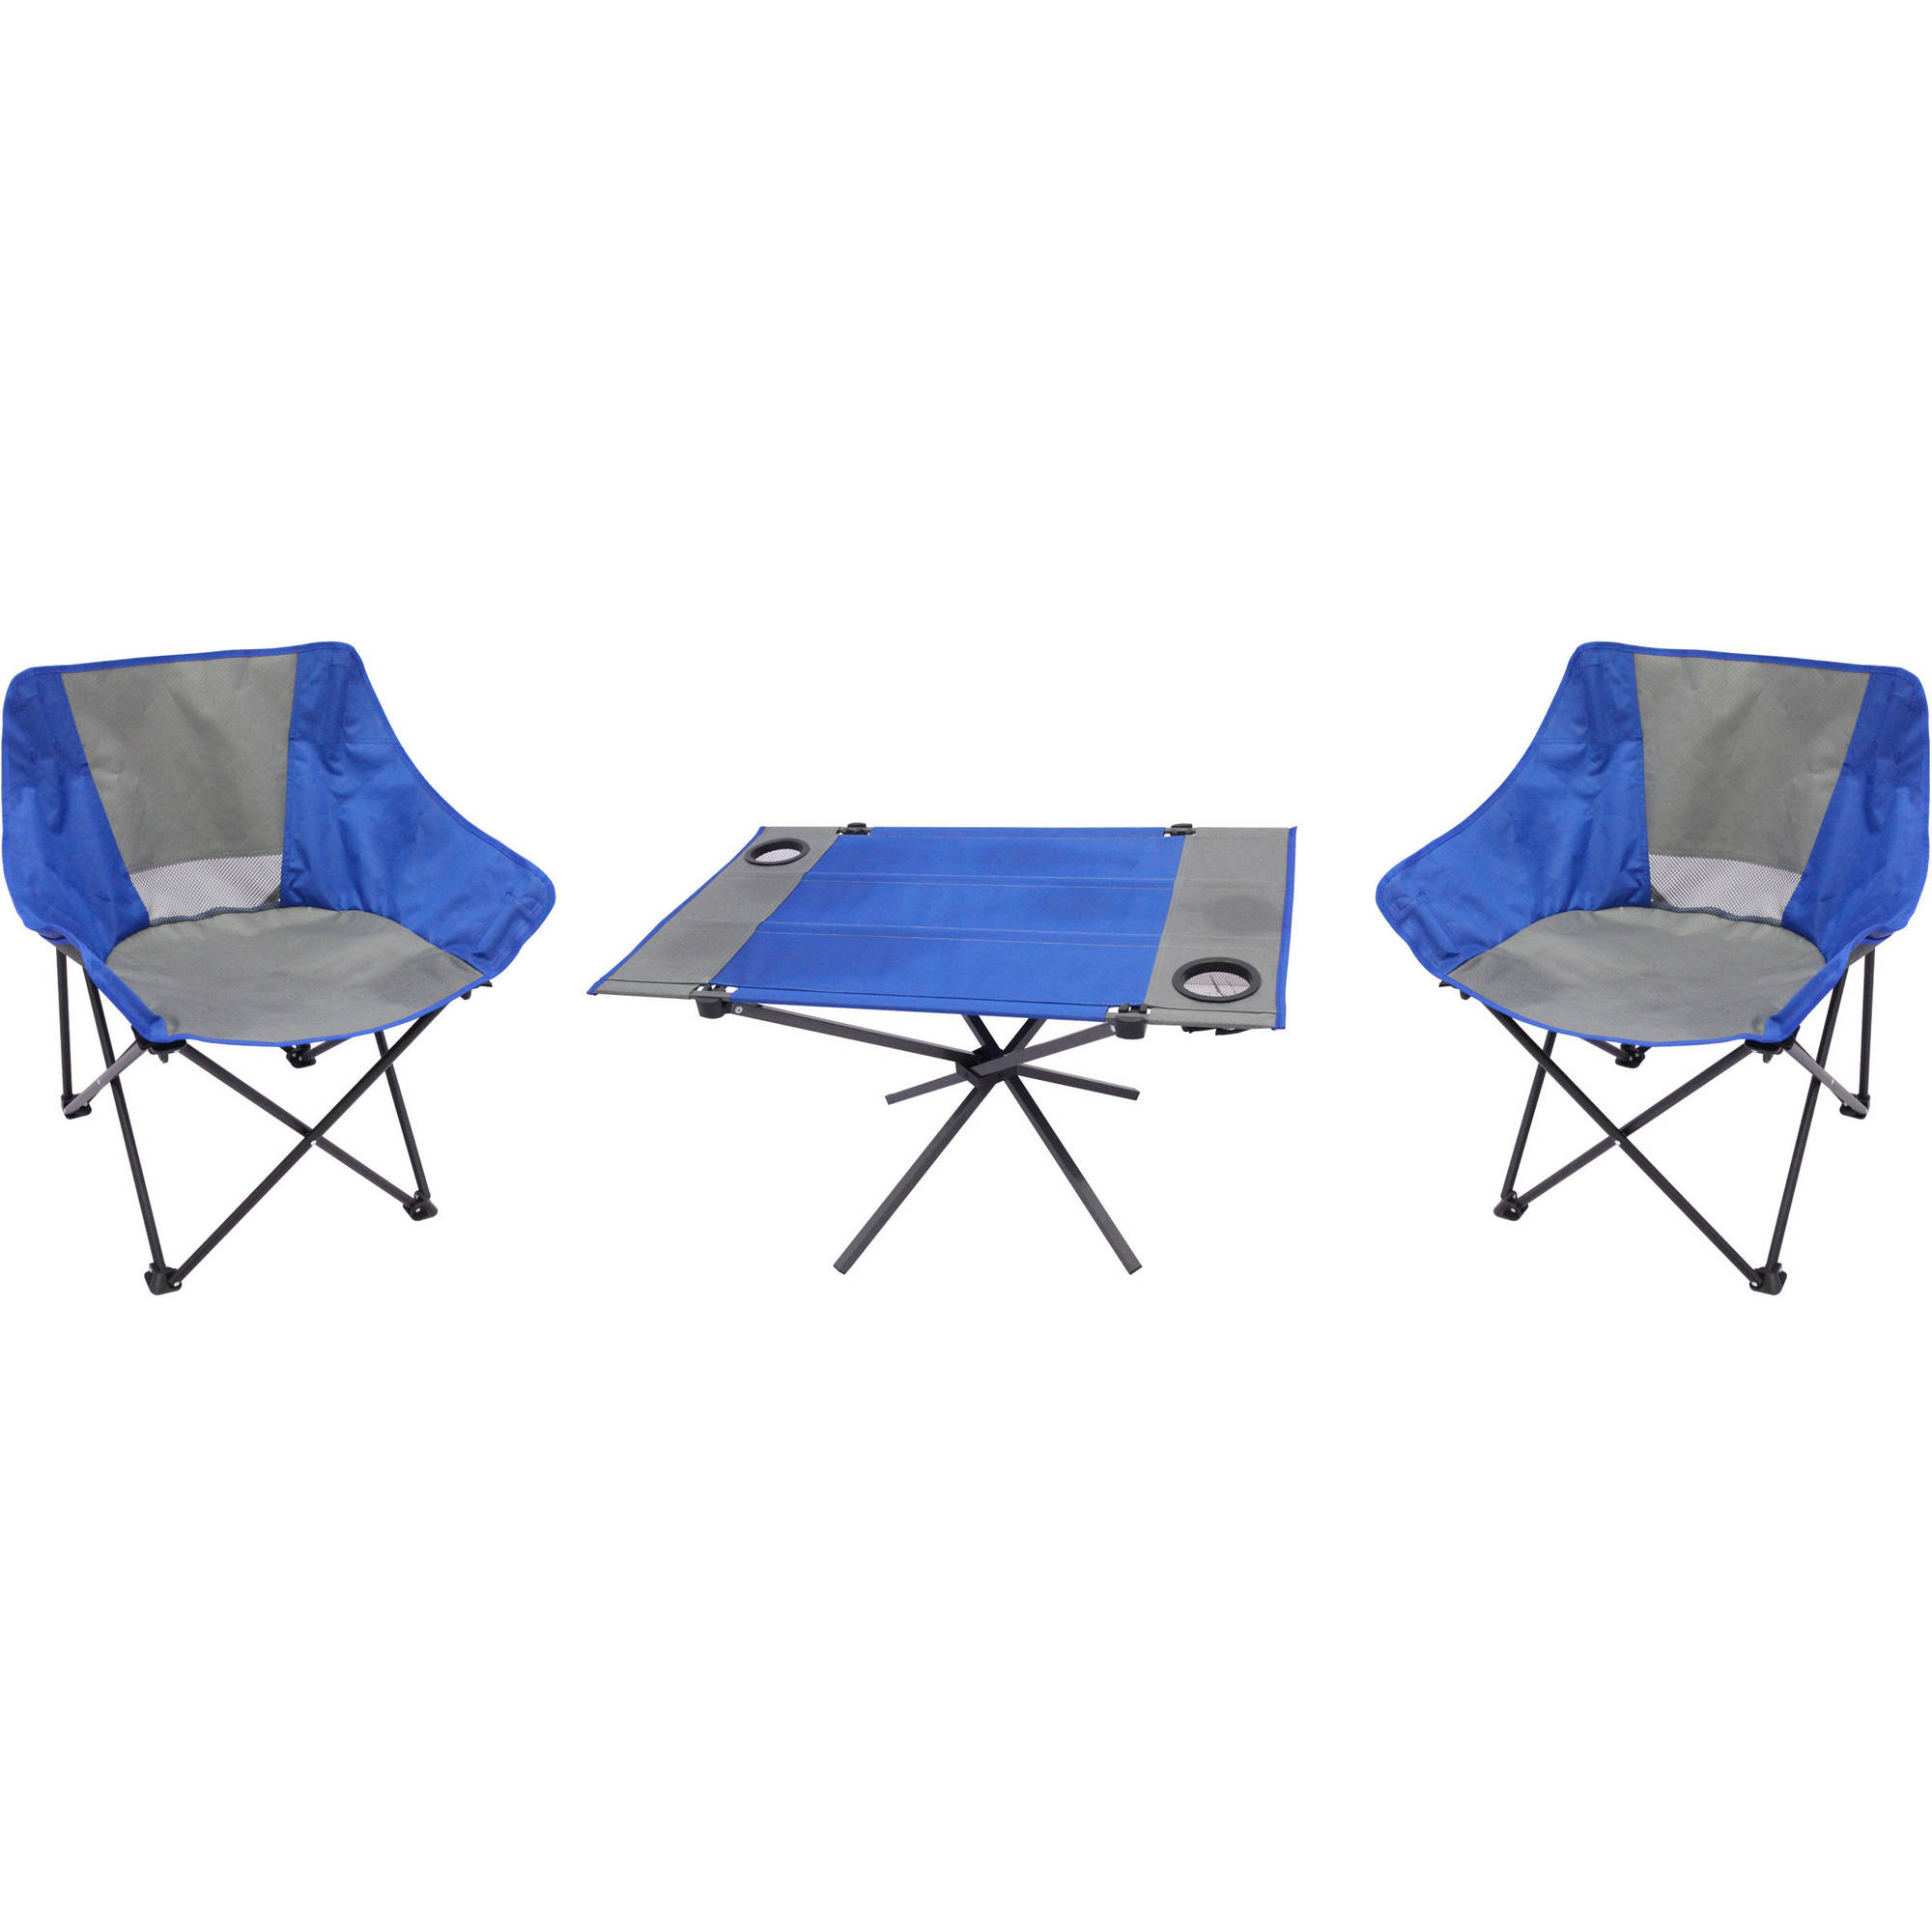 Ozark Trail 3-Piece Portable Table and Chair Set